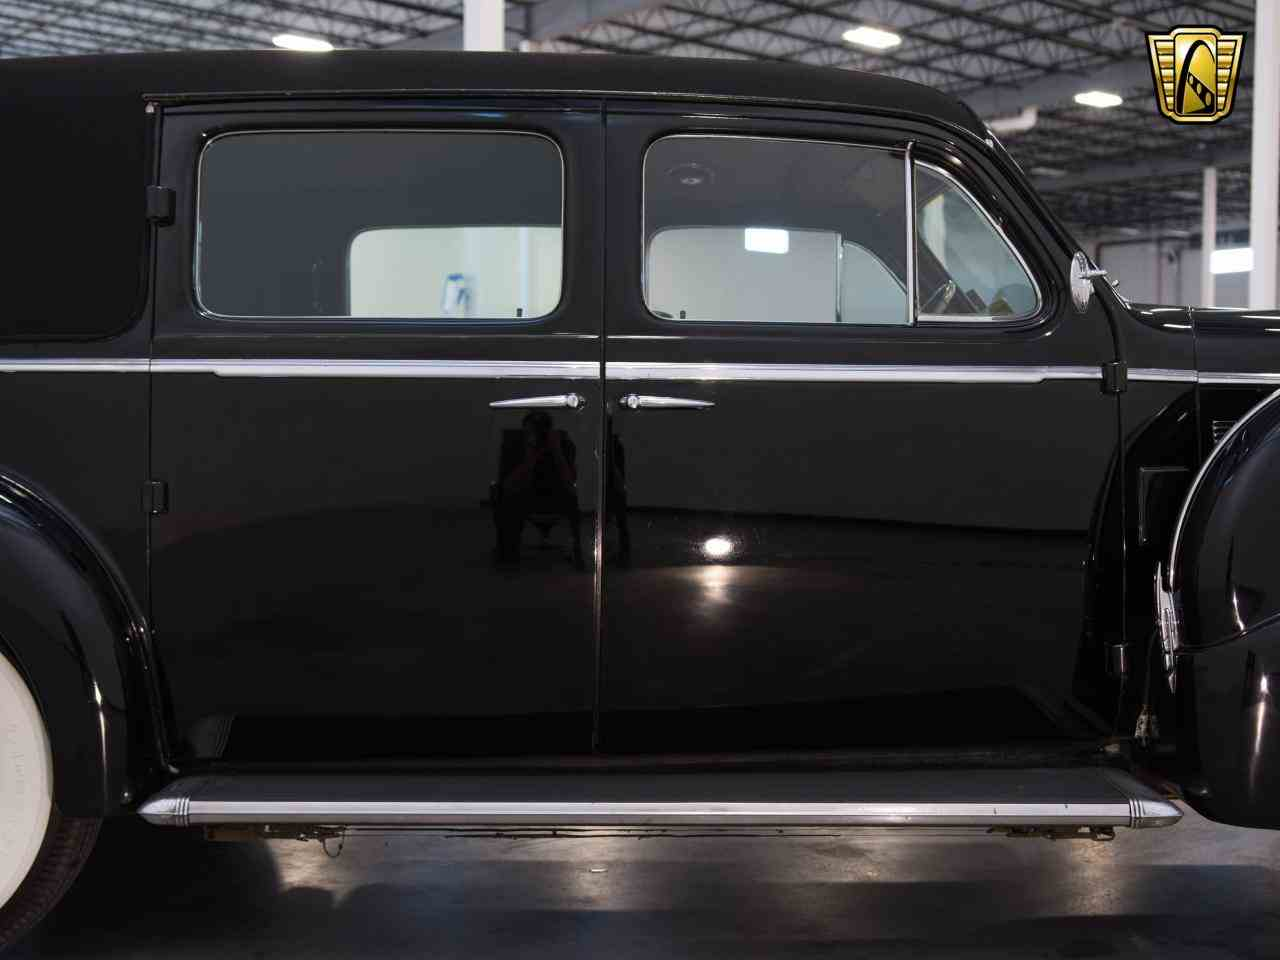 Large Picture of '39 Cadillac 7 Passenger Touring W/ Trunk Offered by Gateway Classic Cars - Milwaukee - KHP0